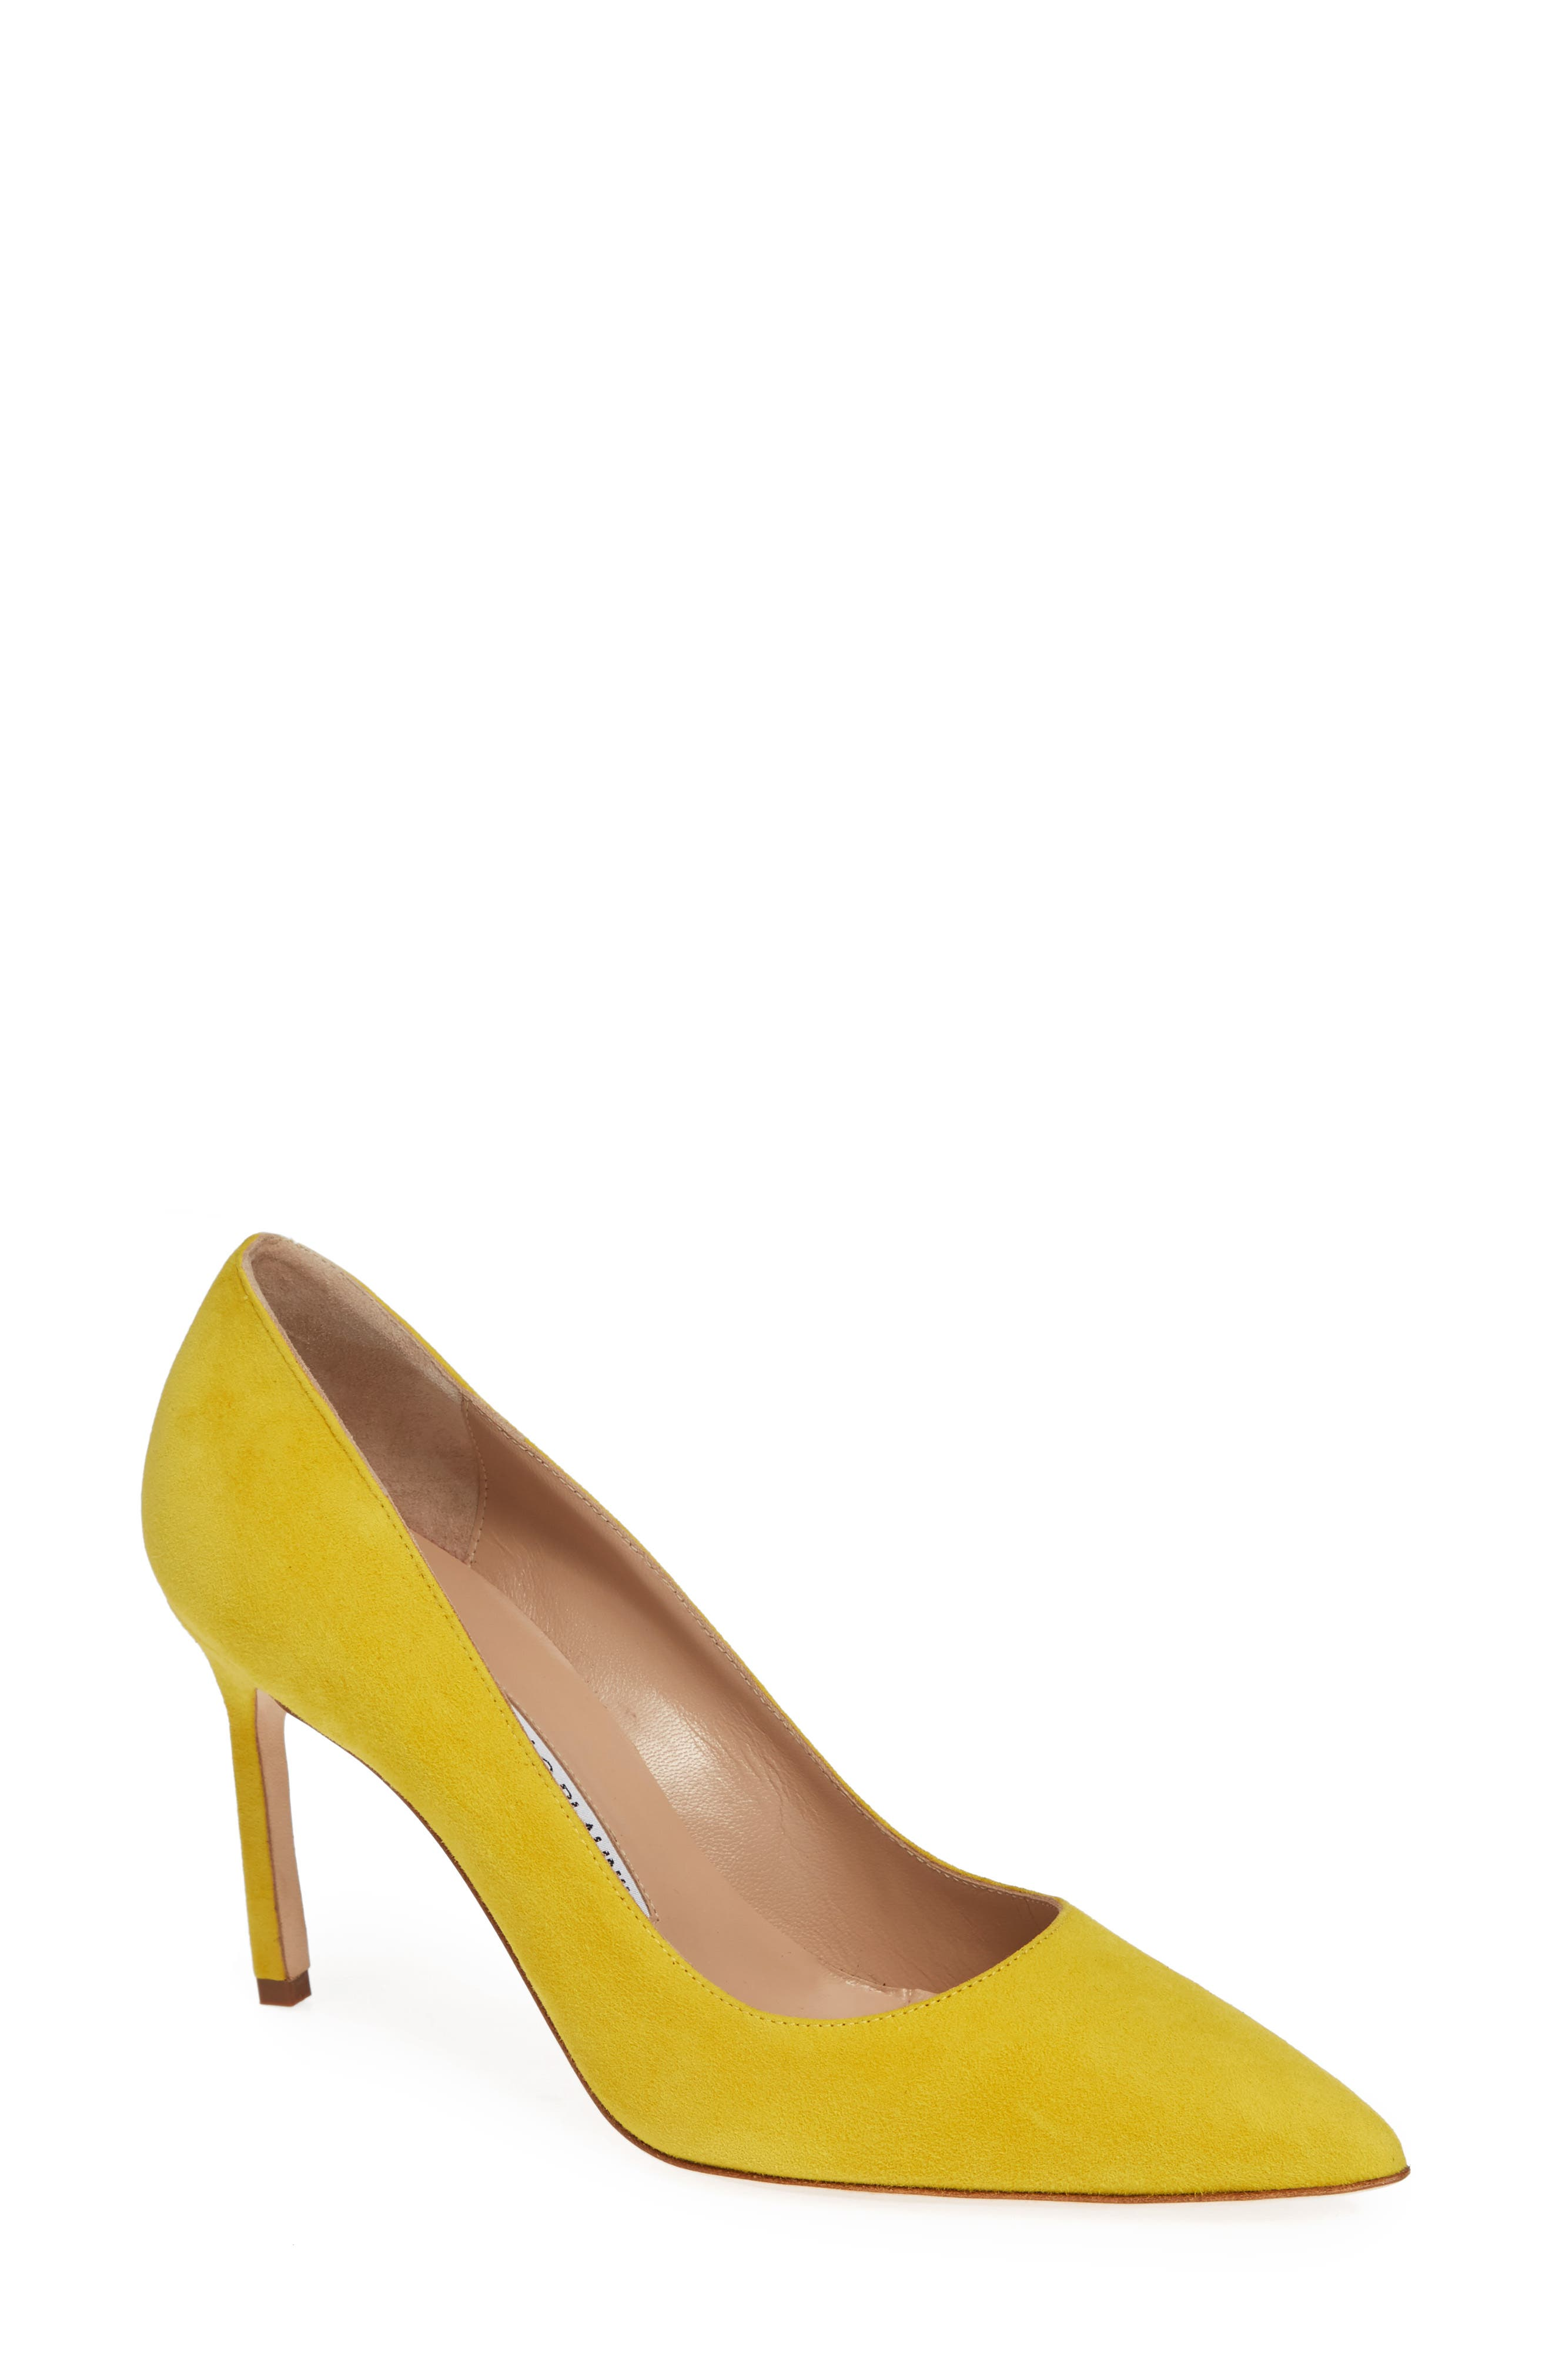 BB Pointy Toe Pump,                         Main,                         color, LEMON YELLOW SUEDE